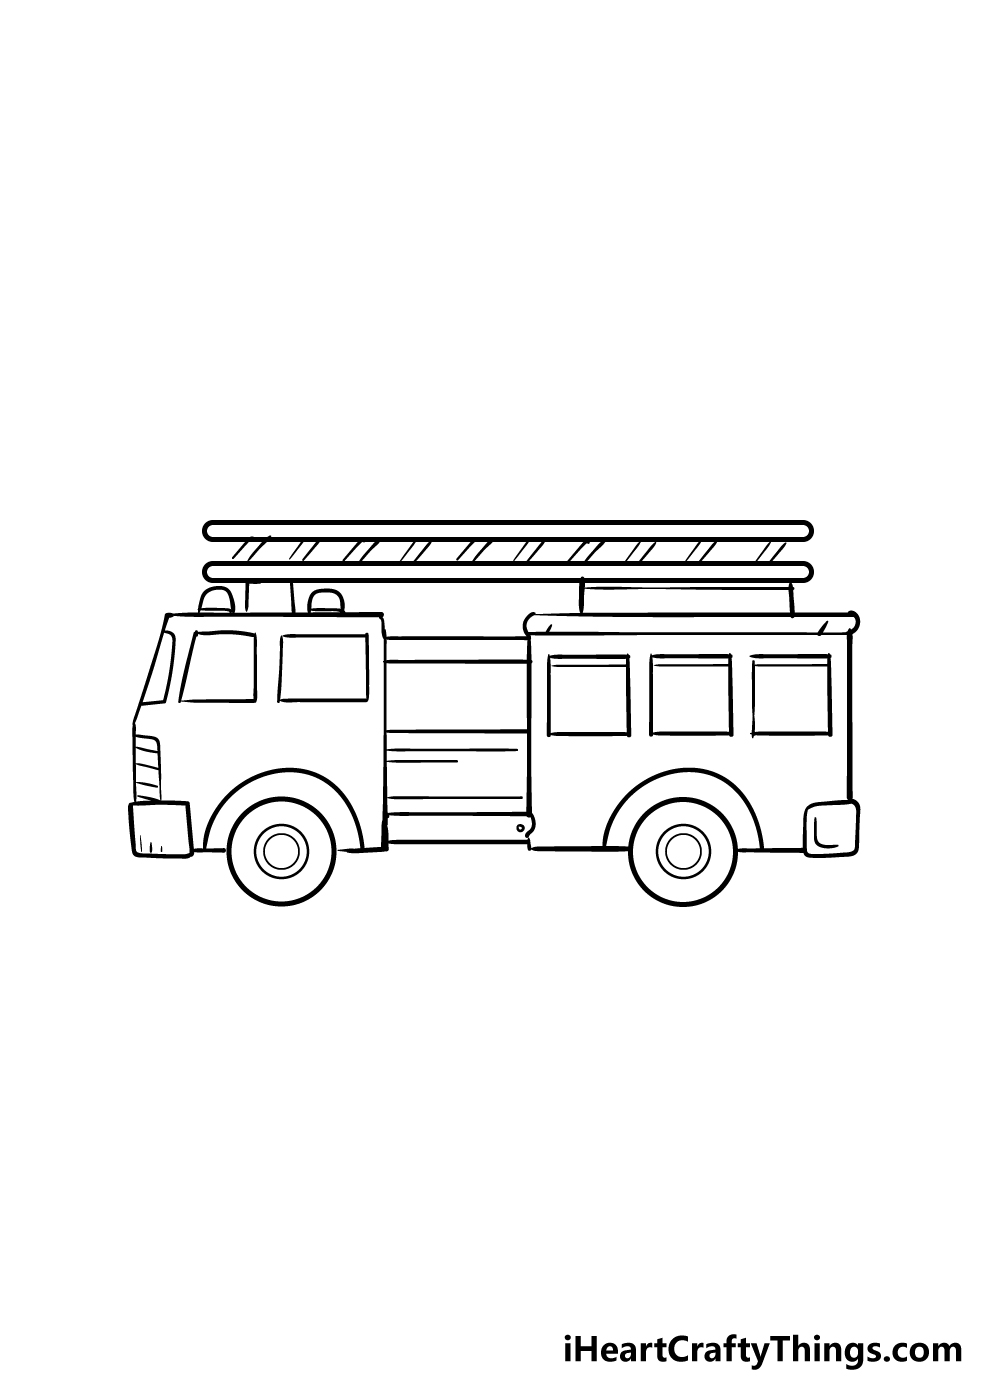 fire truck drawing step 5